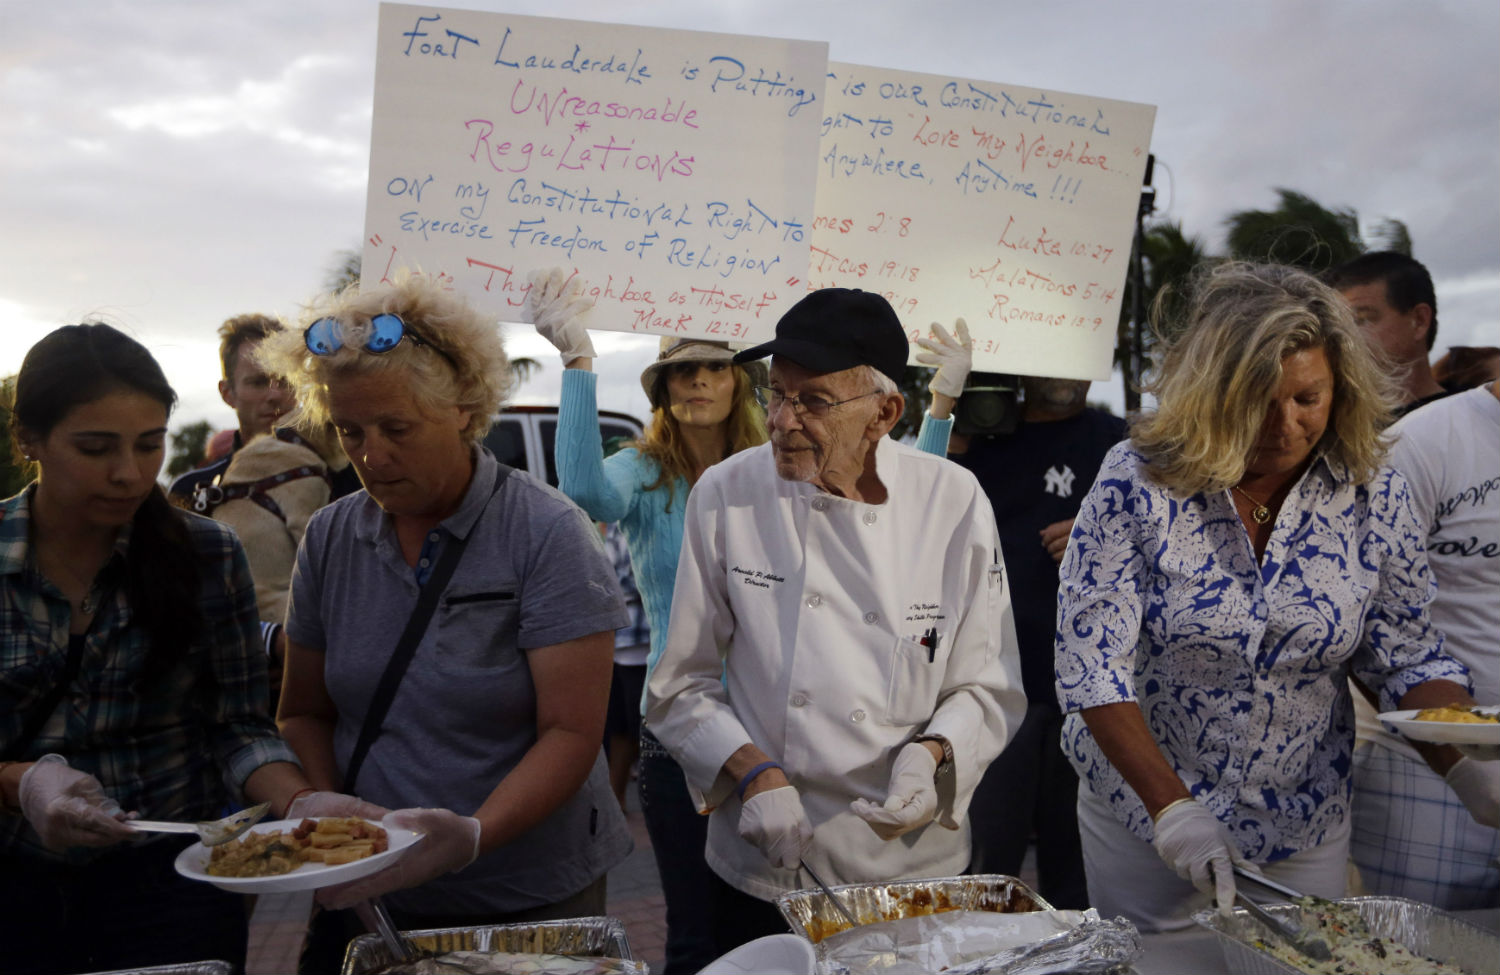 Homeless-advocate-Arnold-Abbott-serves-food-to-the-homeless-in-Fort-Lauderdale